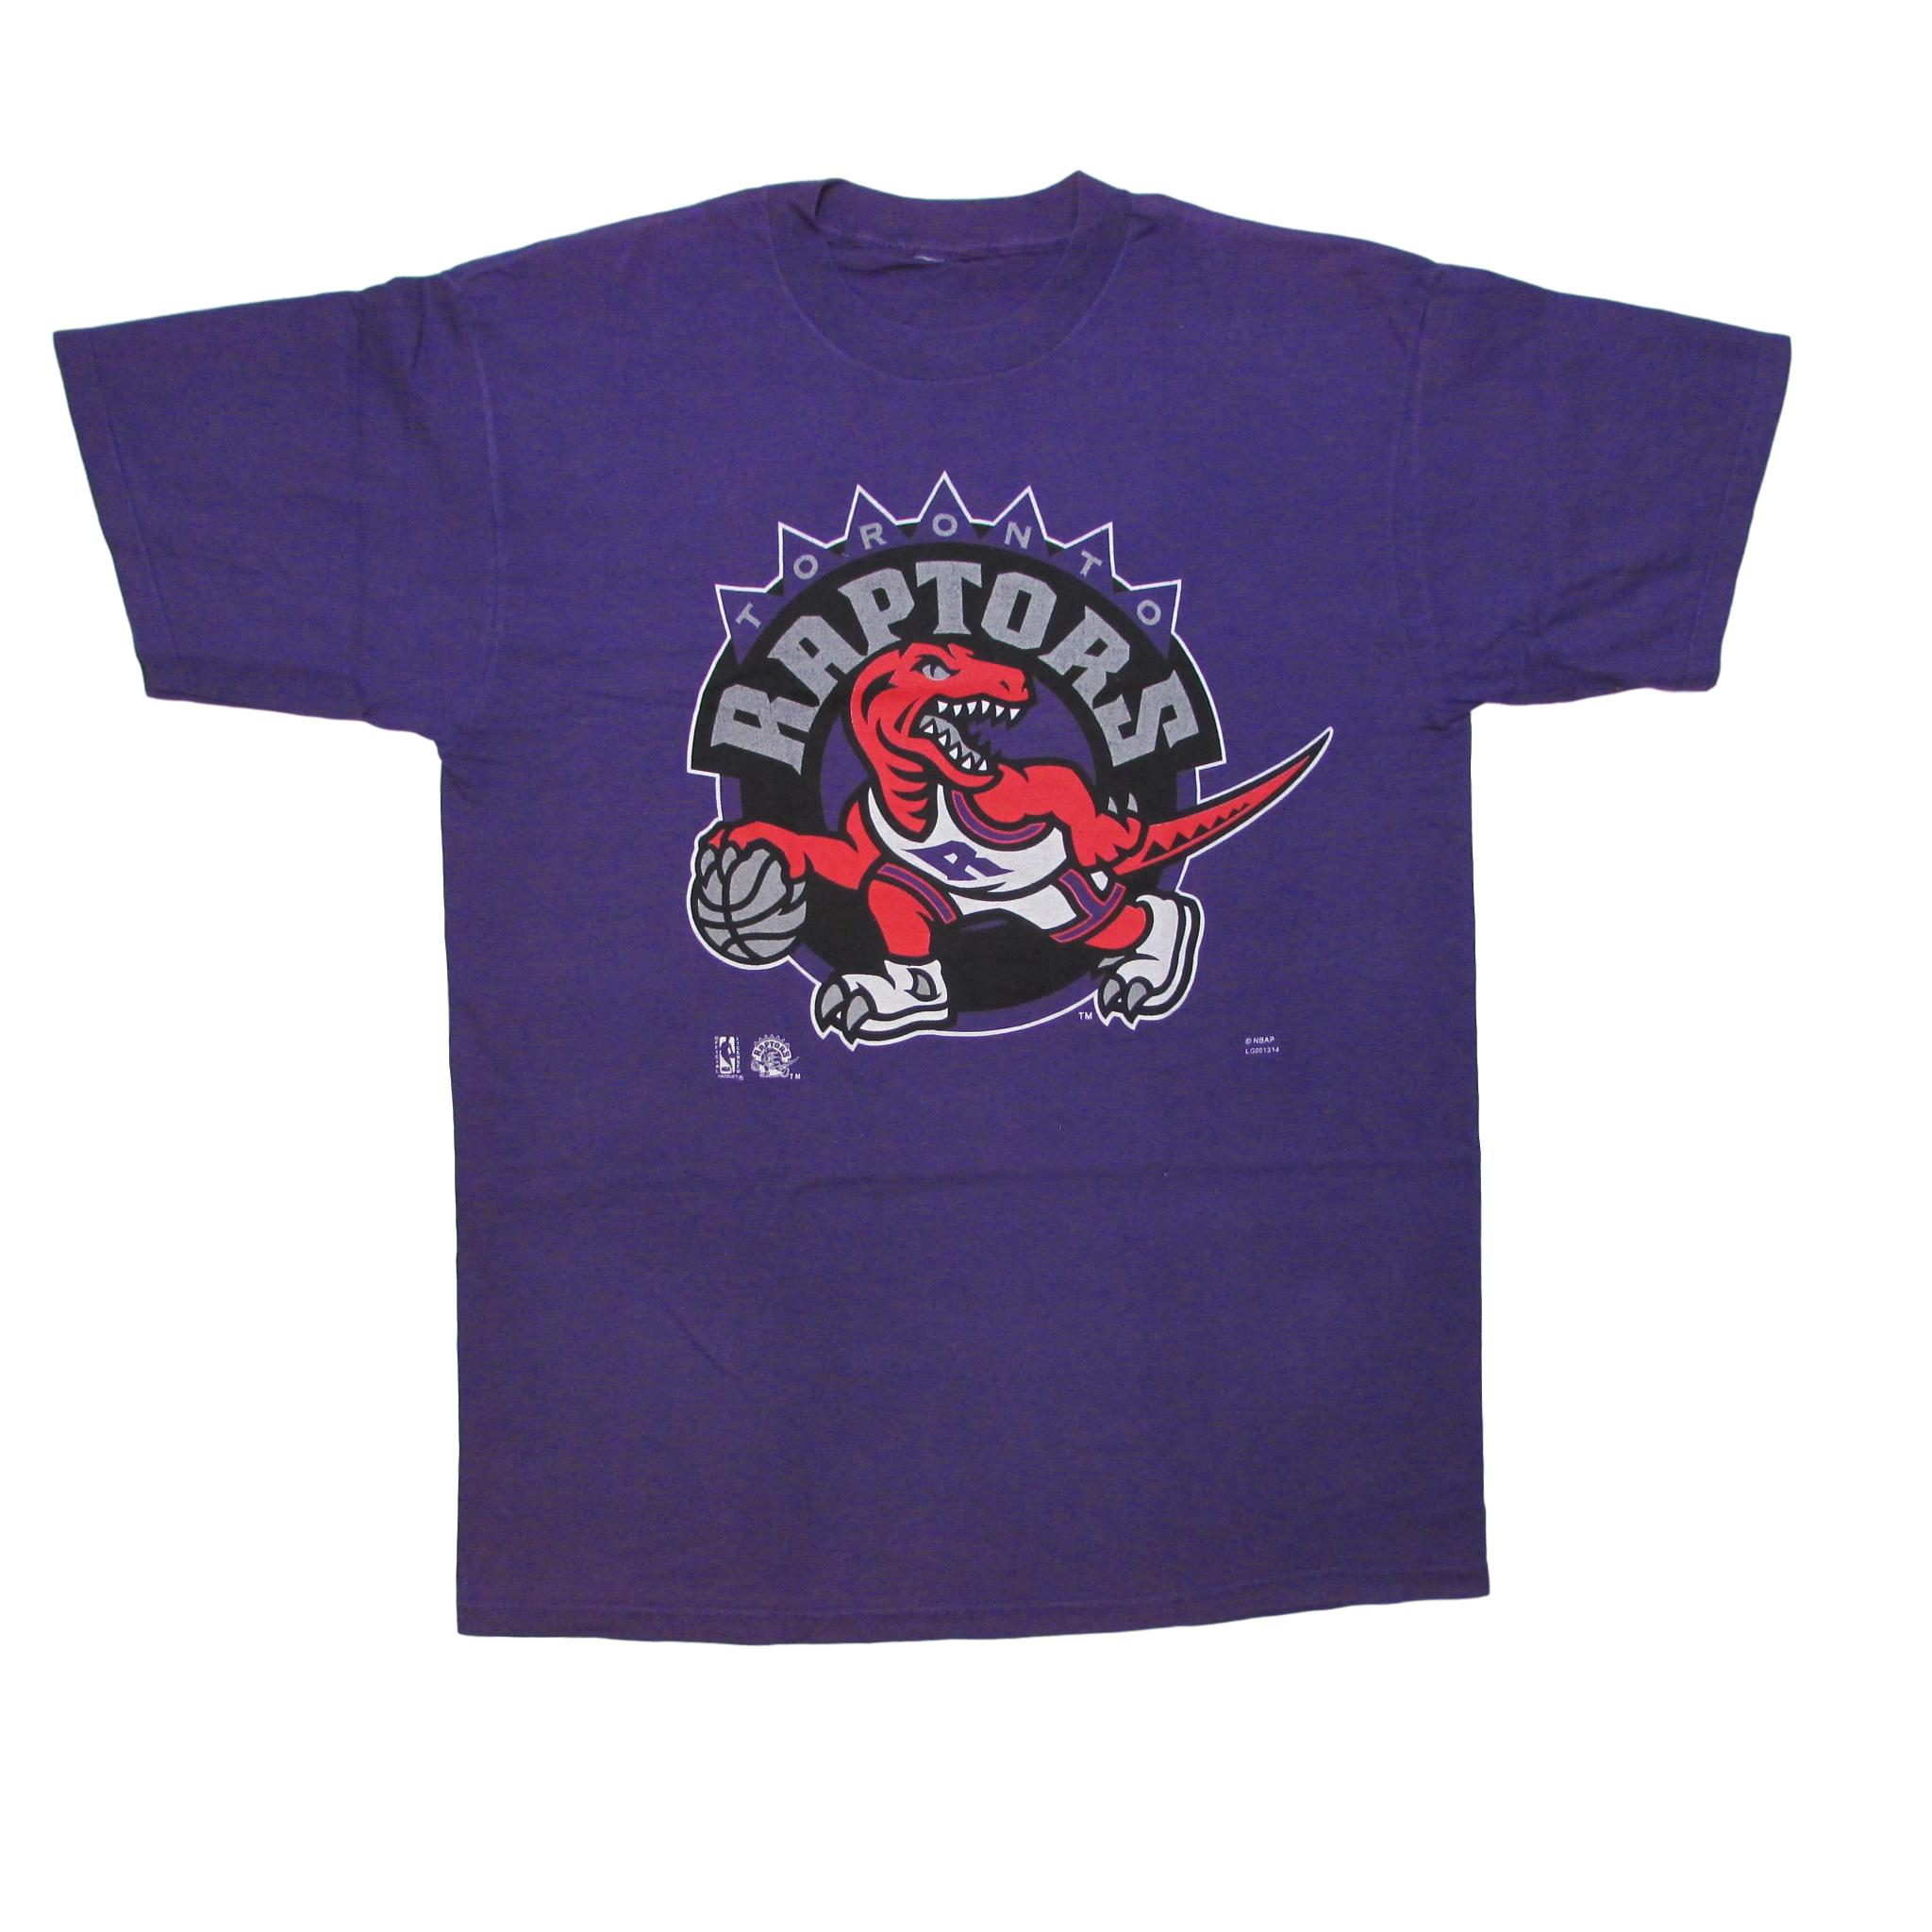 Toronto Raptors Big Logo Basketball T-Shirt 1996